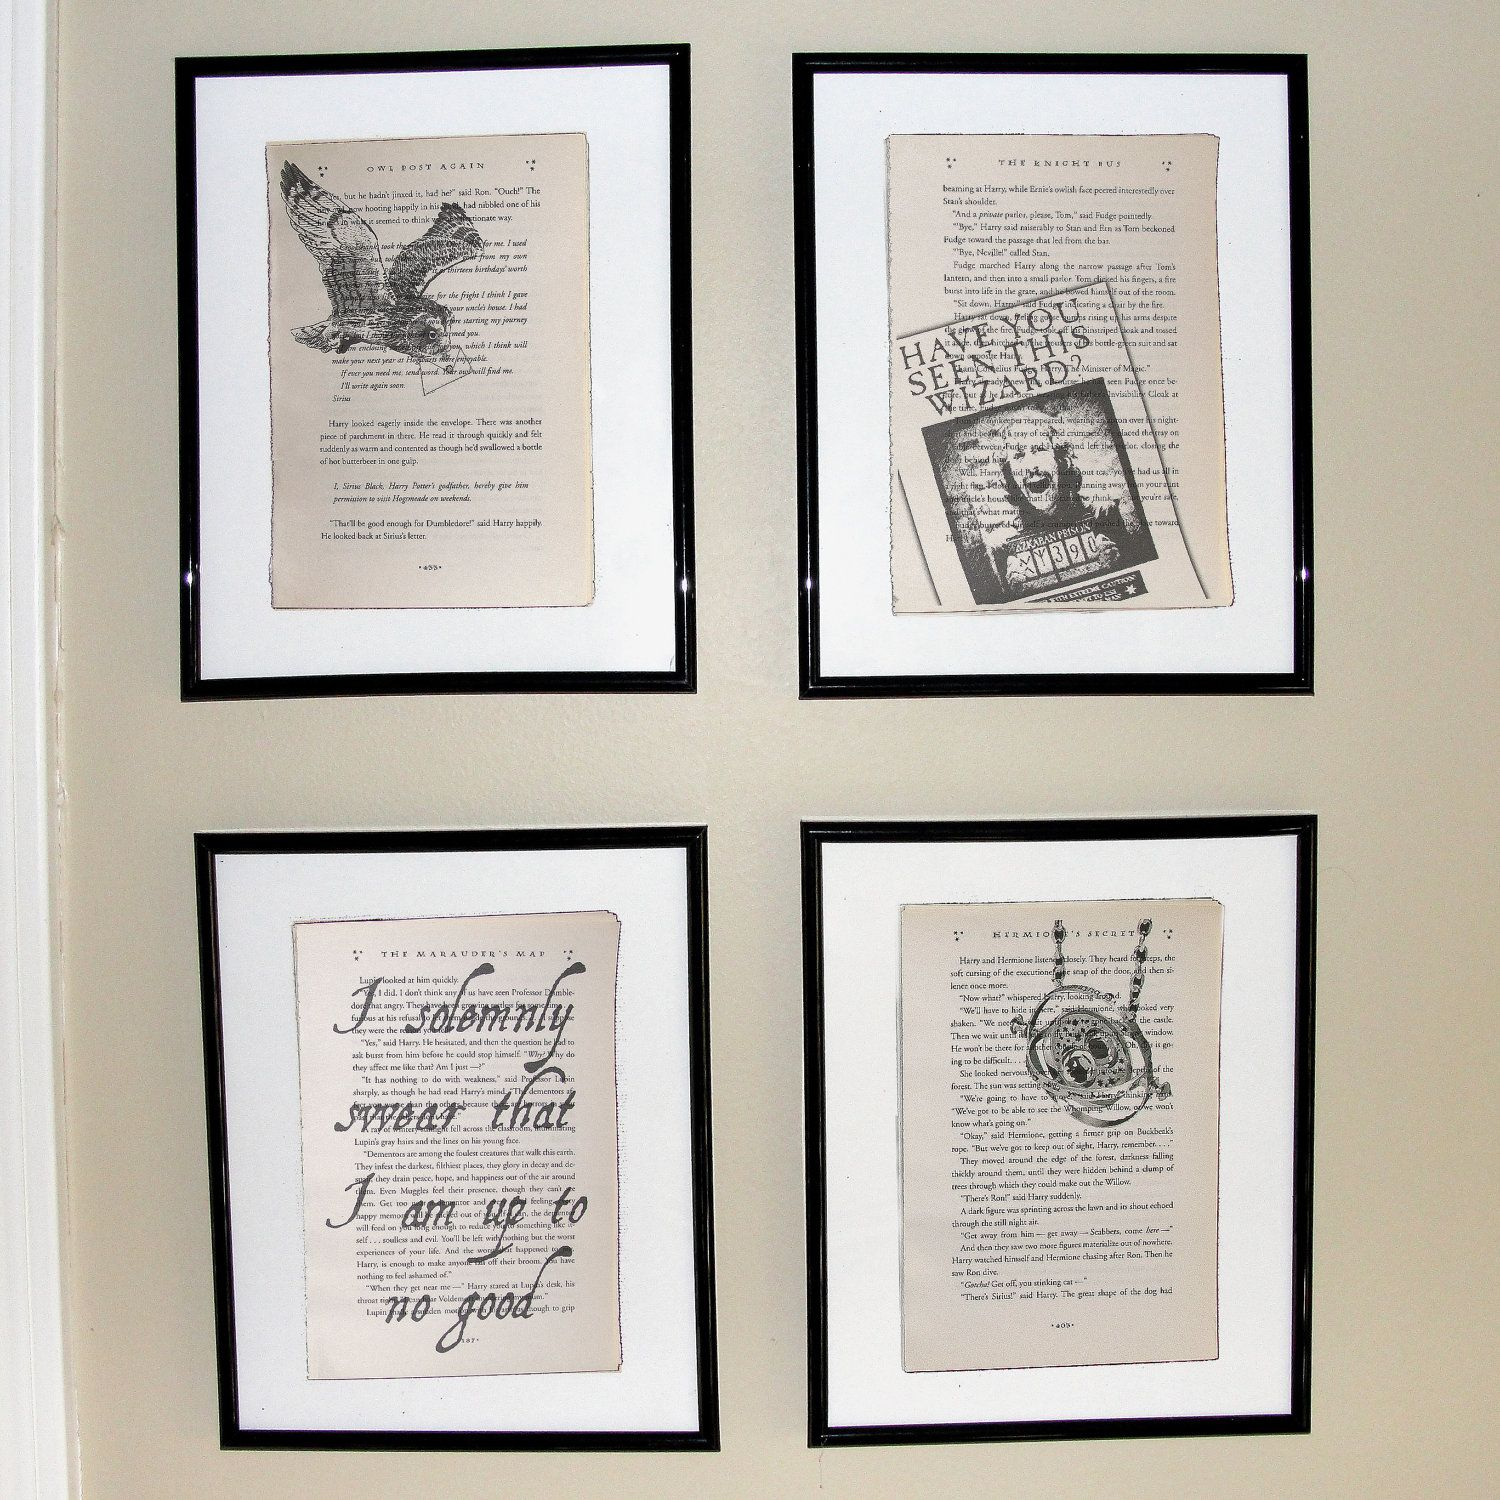 Harry Potter Prisoner Of Azkaban Book 3 Upcycled Book Page Art Prints Home Decor Great For Framing Book Page Art Upcycle Books Harry Potter Nursery